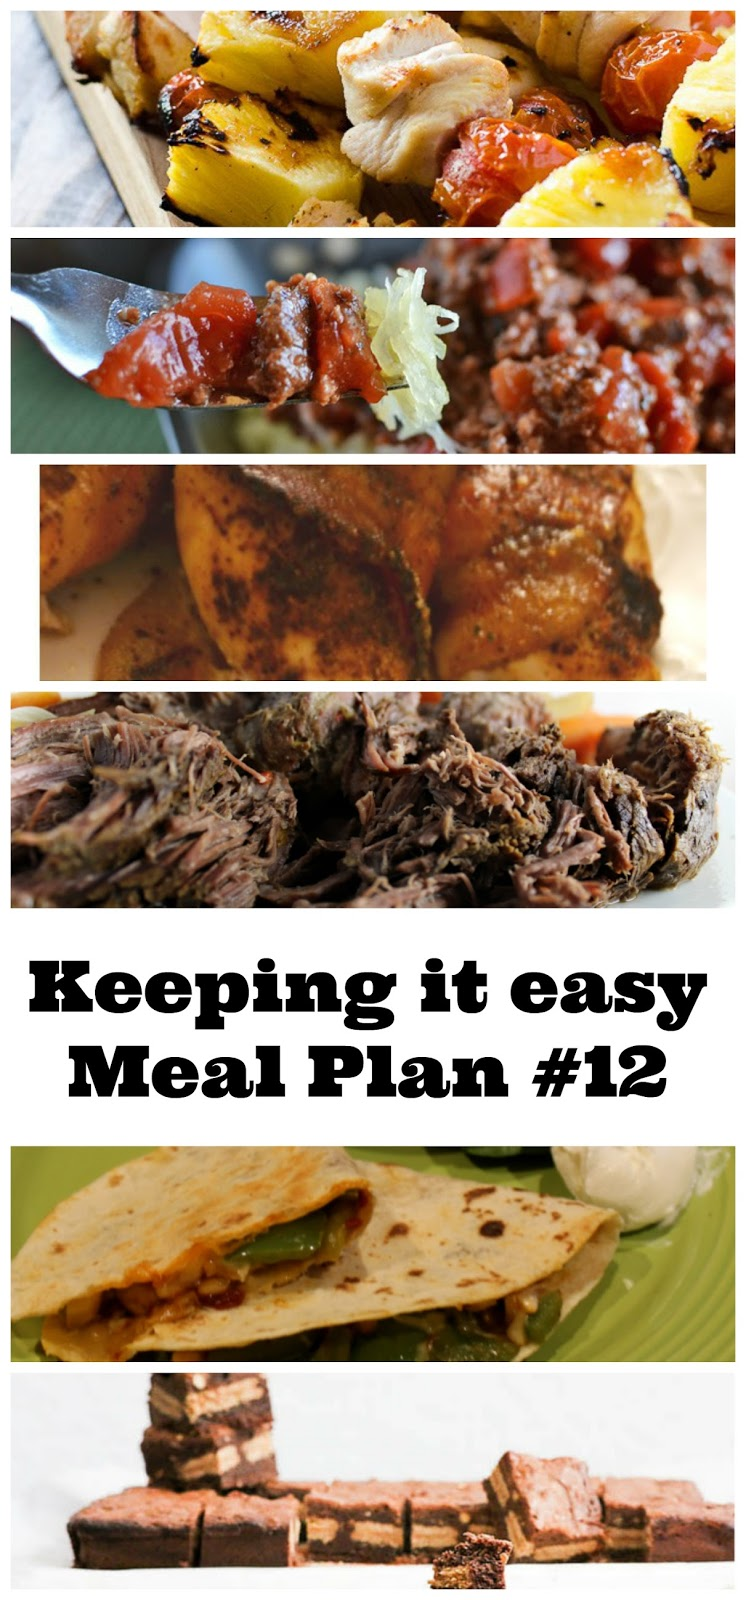 Easy weekly meal plan 12 the shirley journey were going to medieval times tonight and heading to kings dominion on sunday i hope you all have a fabulous weekend keepiteasy weekly meal plan forumfinder Gallery